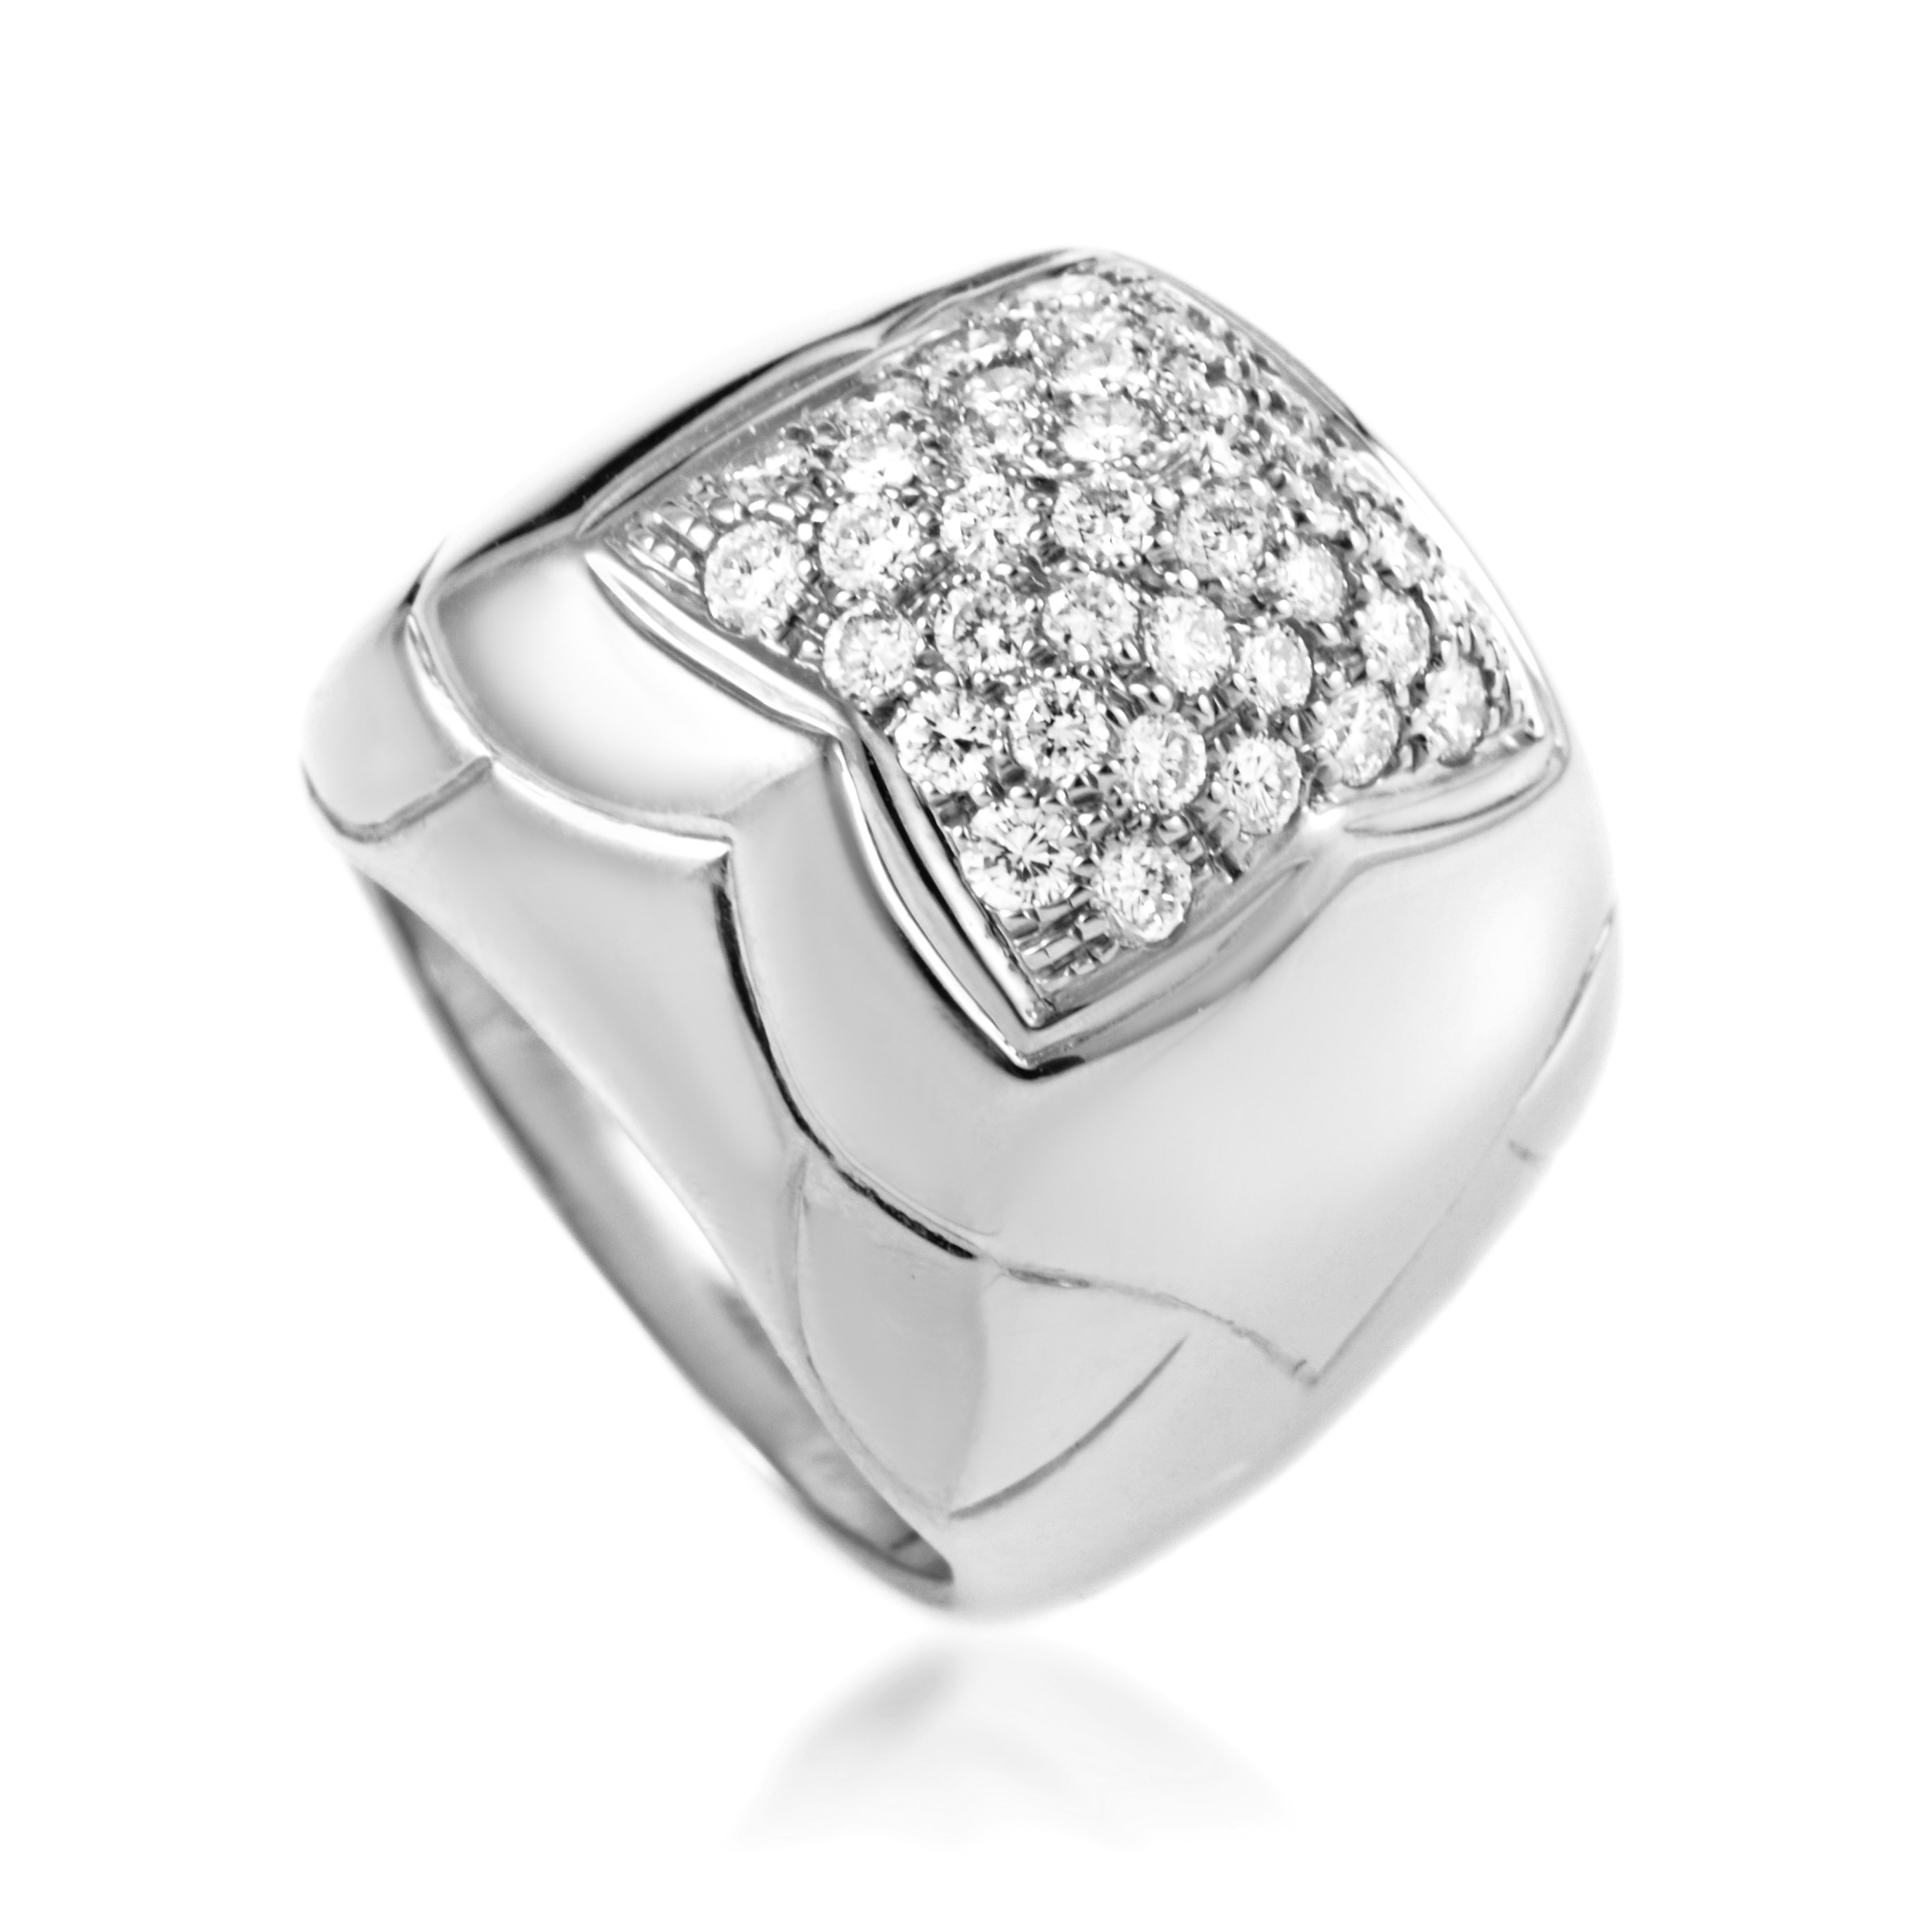 Bvlgari Piramide Women's 18K White Gold Diamond Pave Cocktail Ring